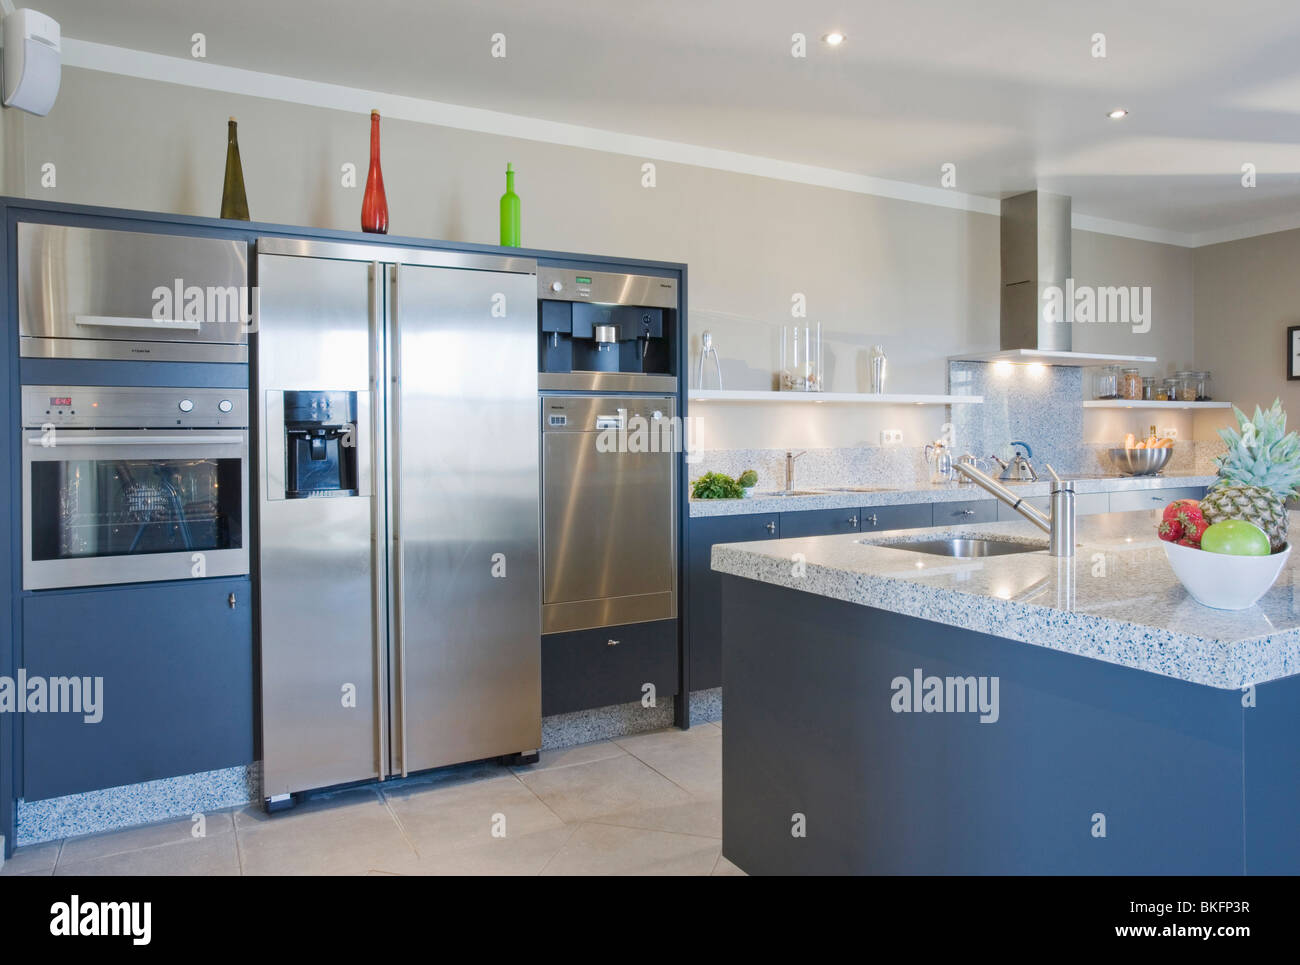 American style stainless steel fridge freezer and ovens in for American style kitchen